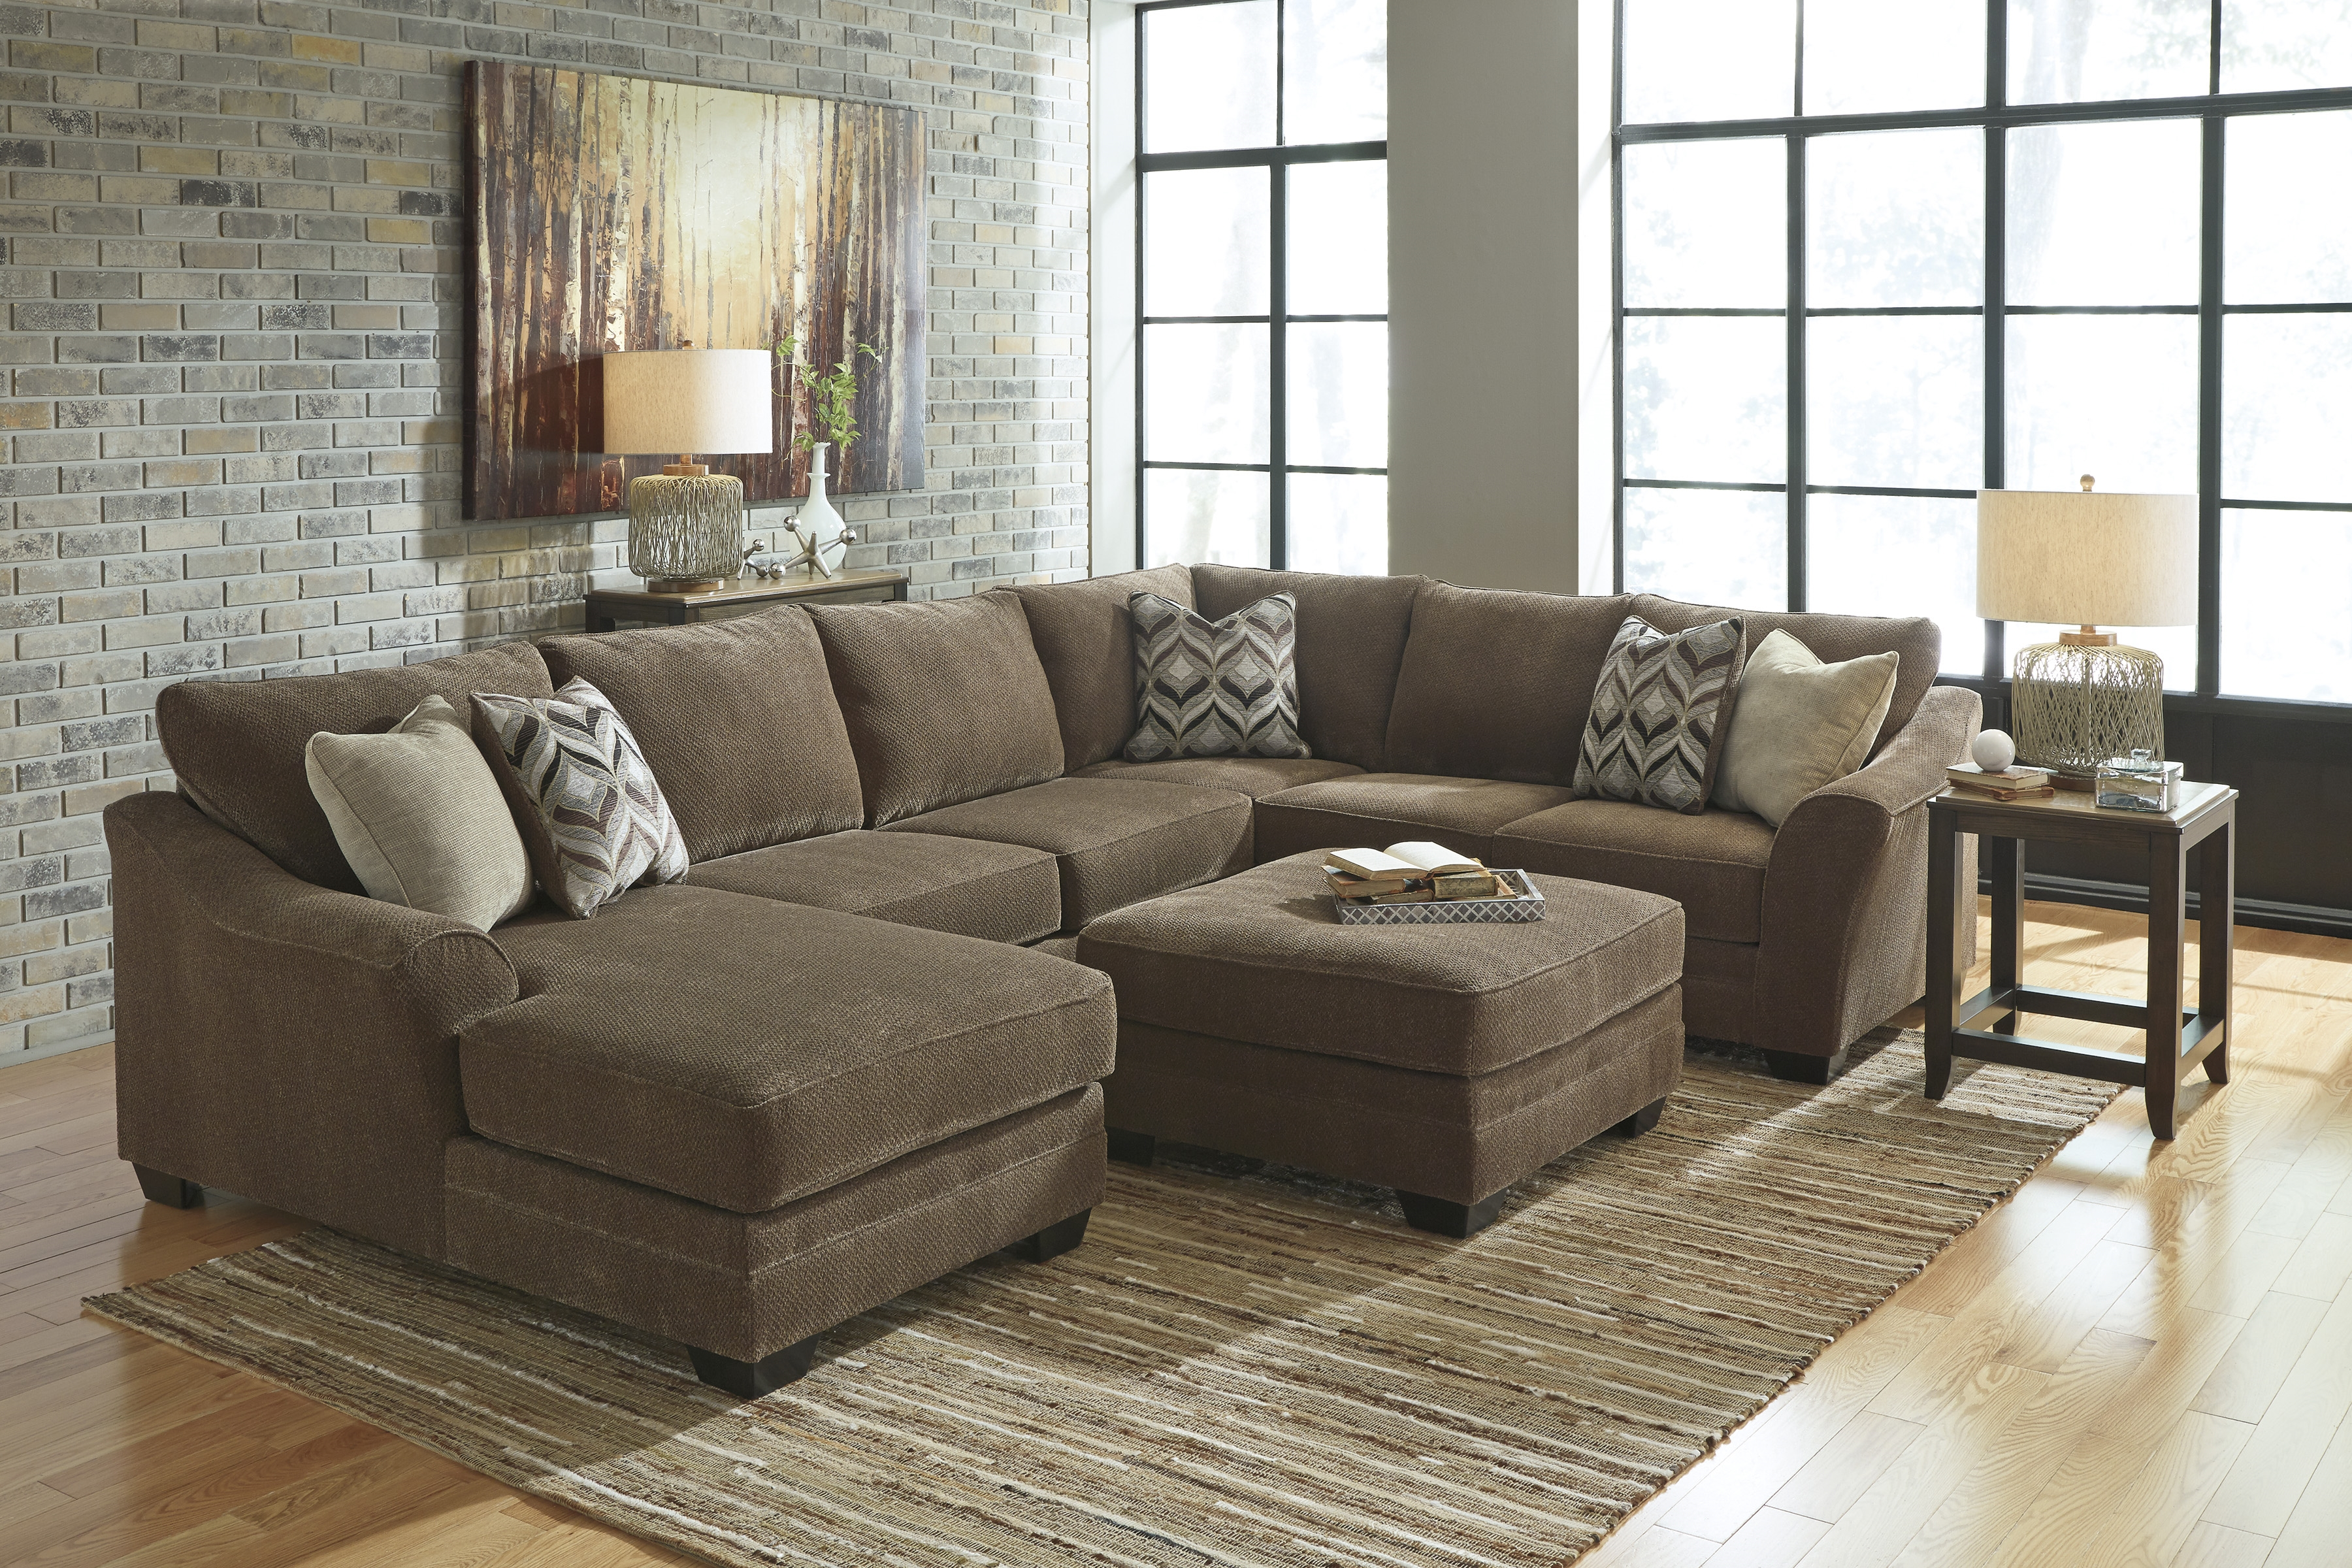 Signature Furniture Outlet Discounted Furniture In Dallas